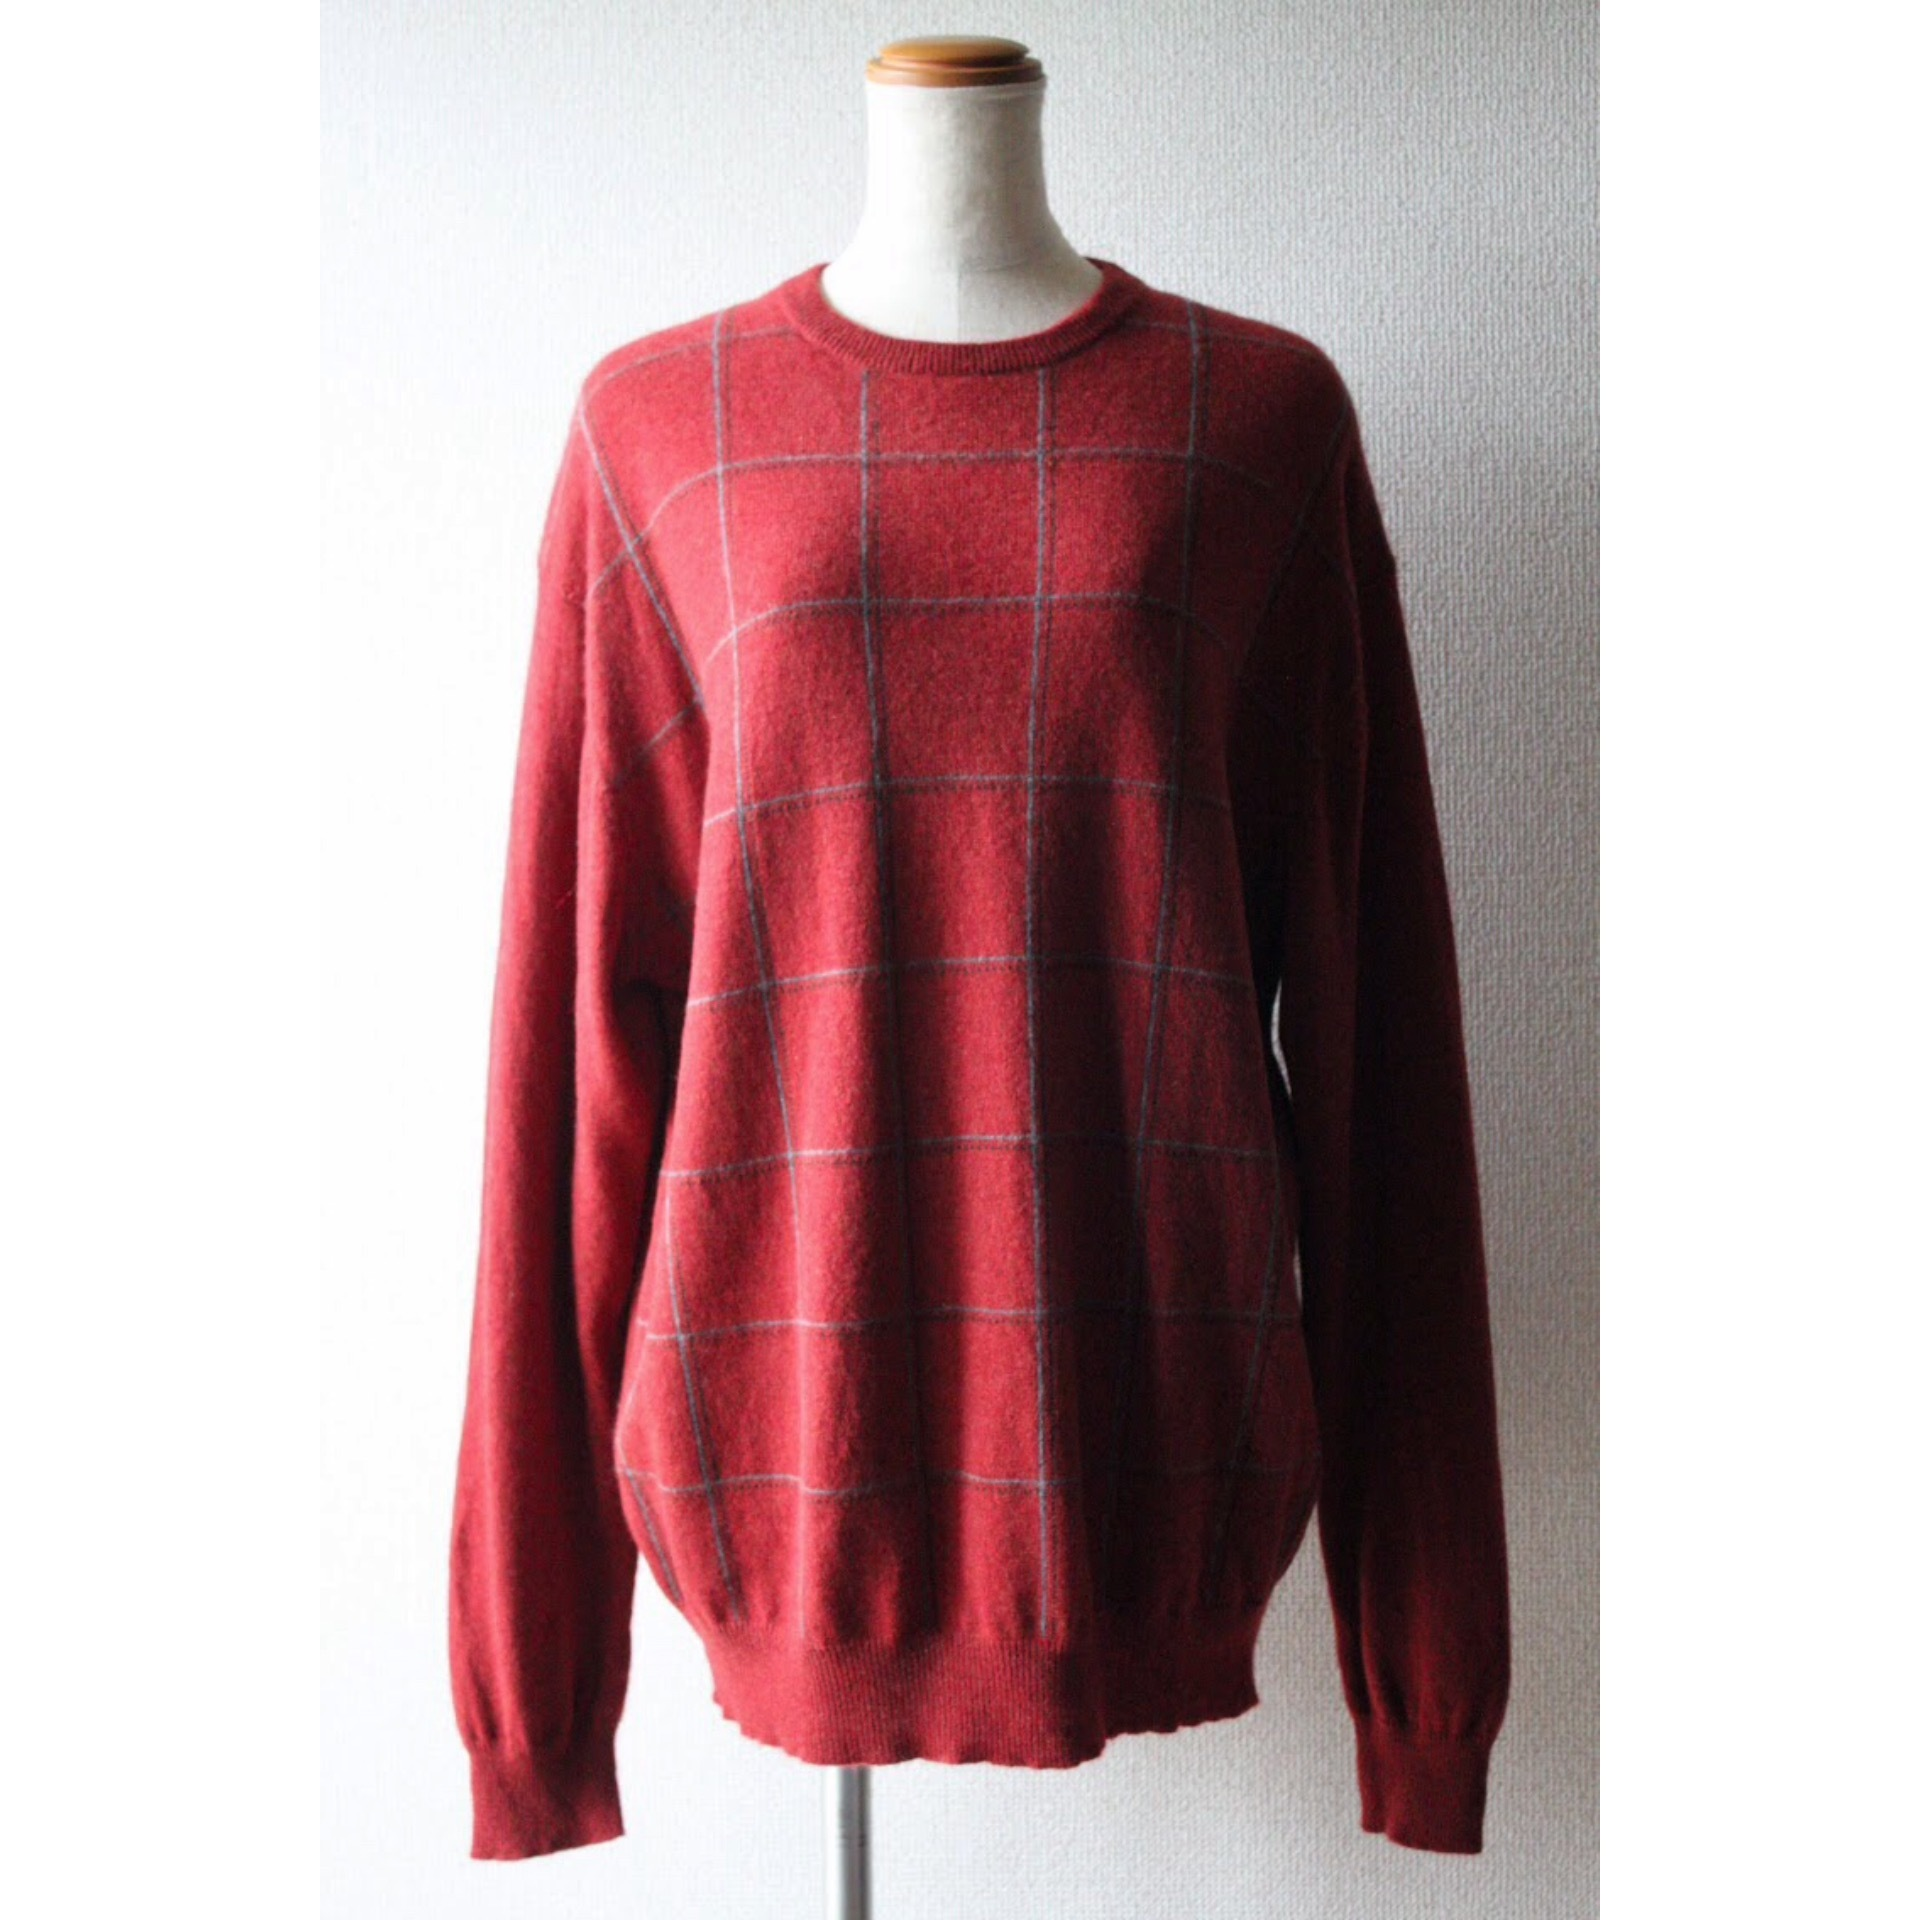 Vintage check cashmere sweater